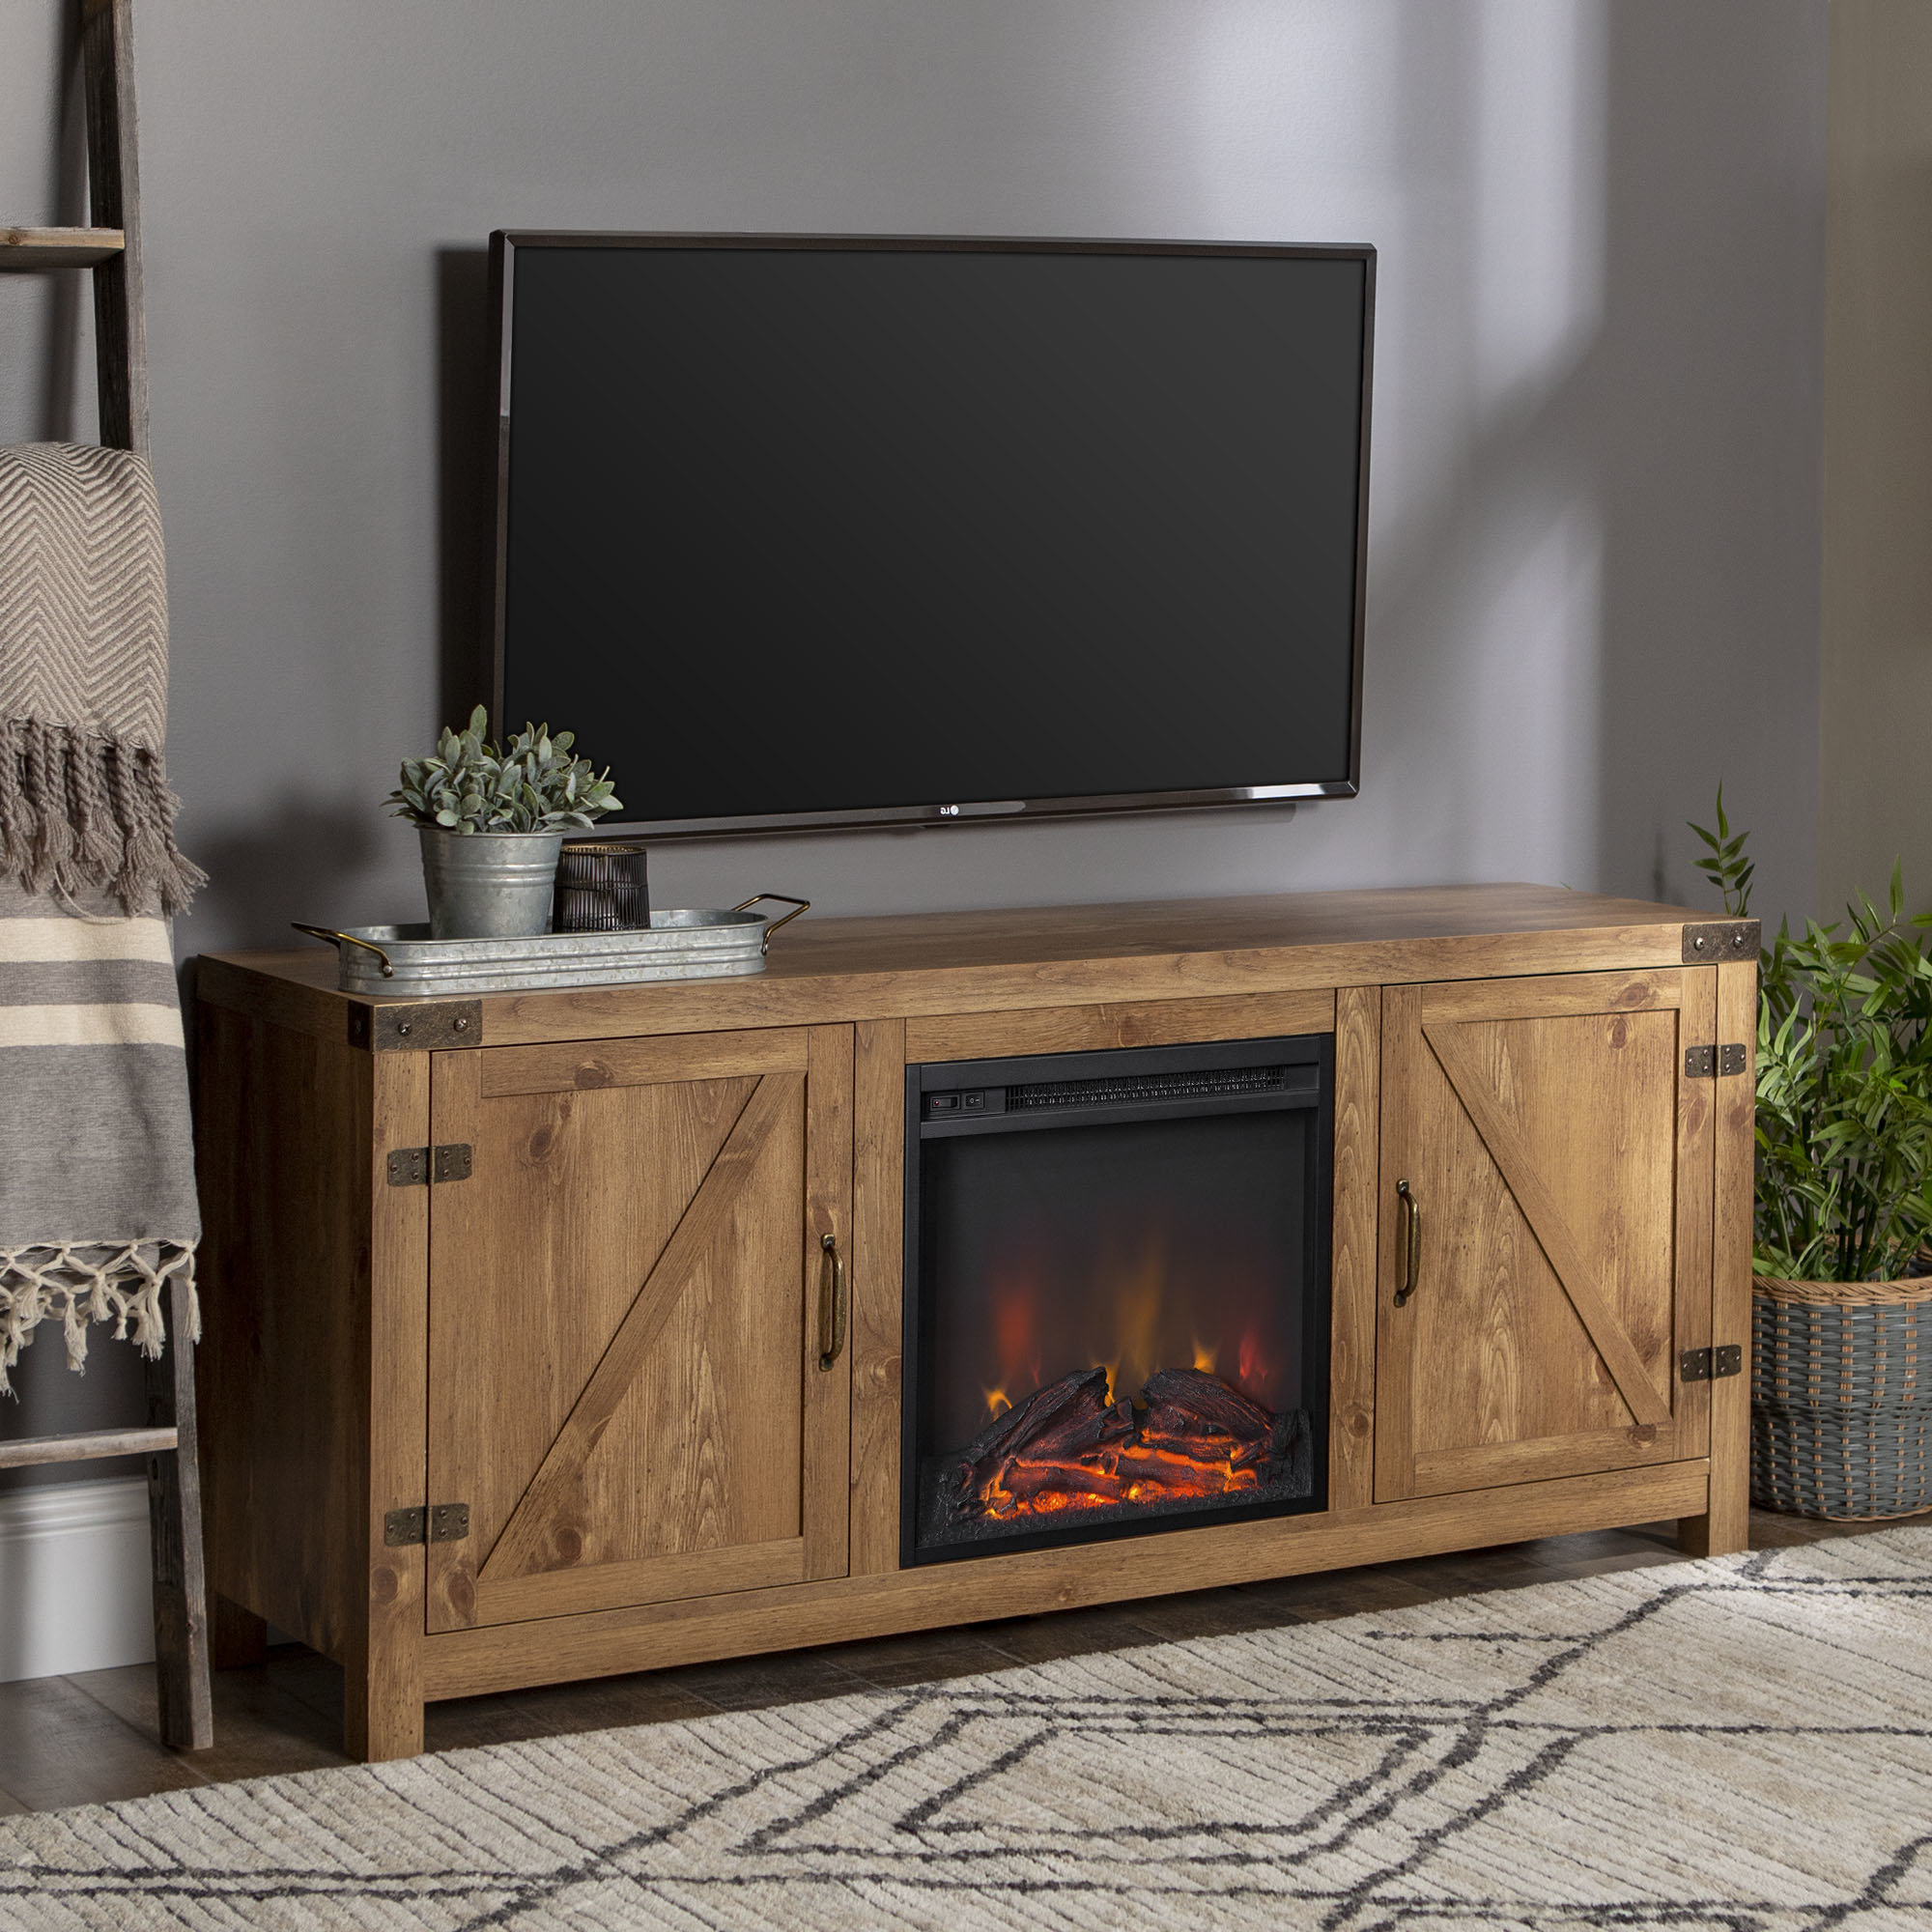 Sinclair Grey 54 Inch Tv Stands For Most Up To Date 60 69 Inch Tv Stand Fireplaces You'll Love (View 15 of 20)